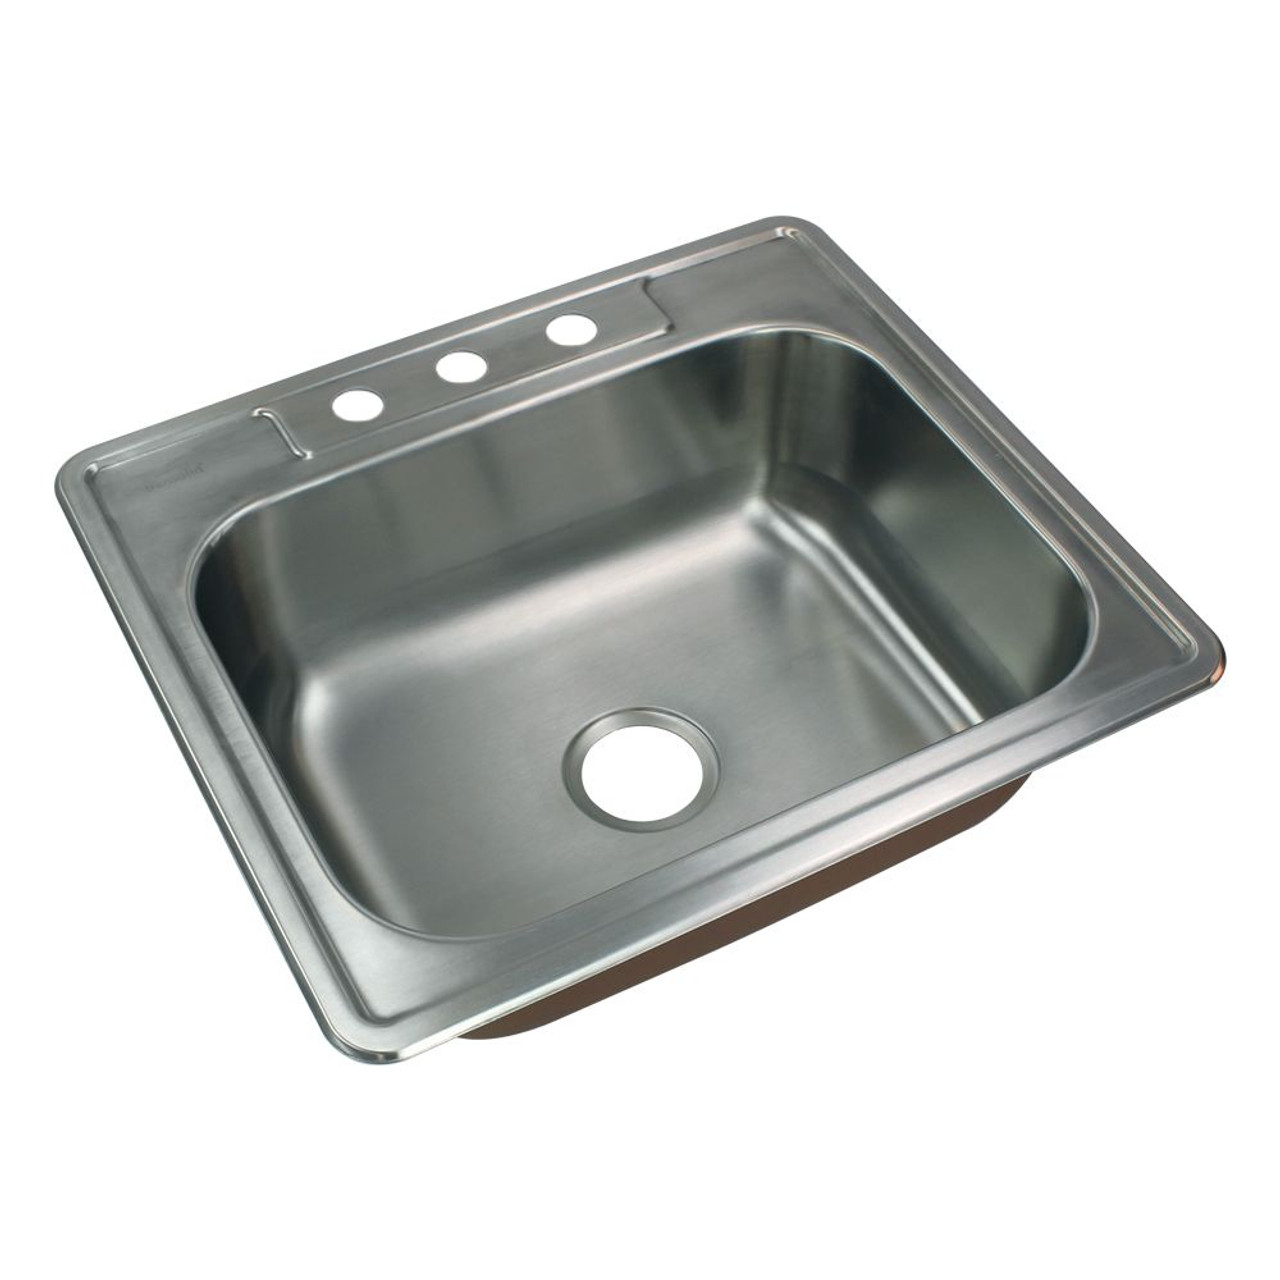 Transolid CTSB25228-3 Classic 25in x 22in 18 Gauge Drop-in Single Bowl  Kitchen Sink with 3 Faucet Holes